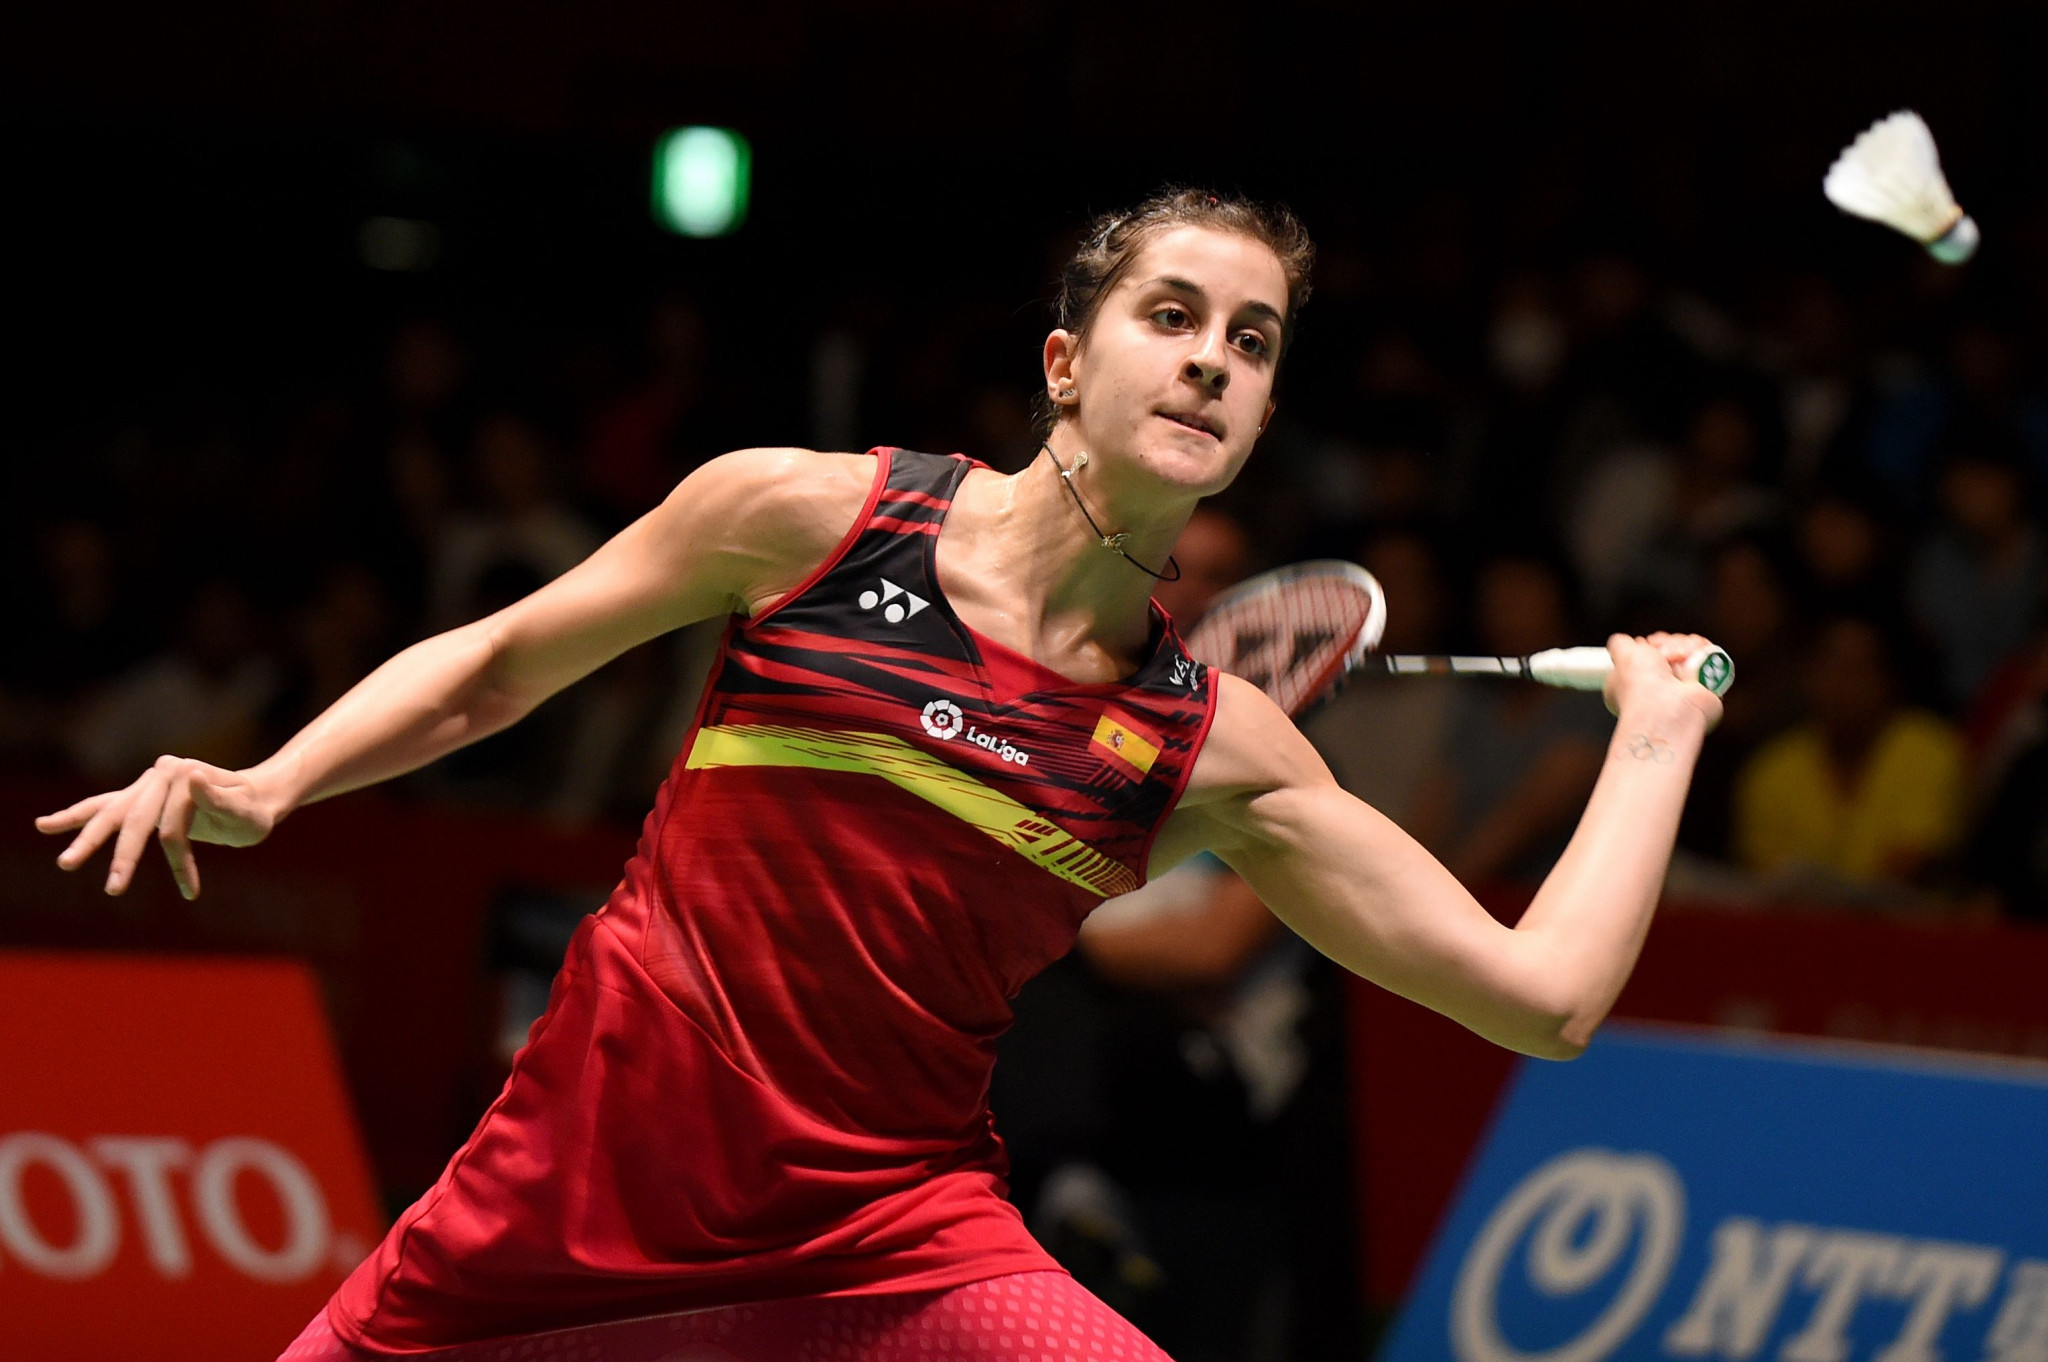 Carolina Marin earned an impressive first round win ©Getty Images